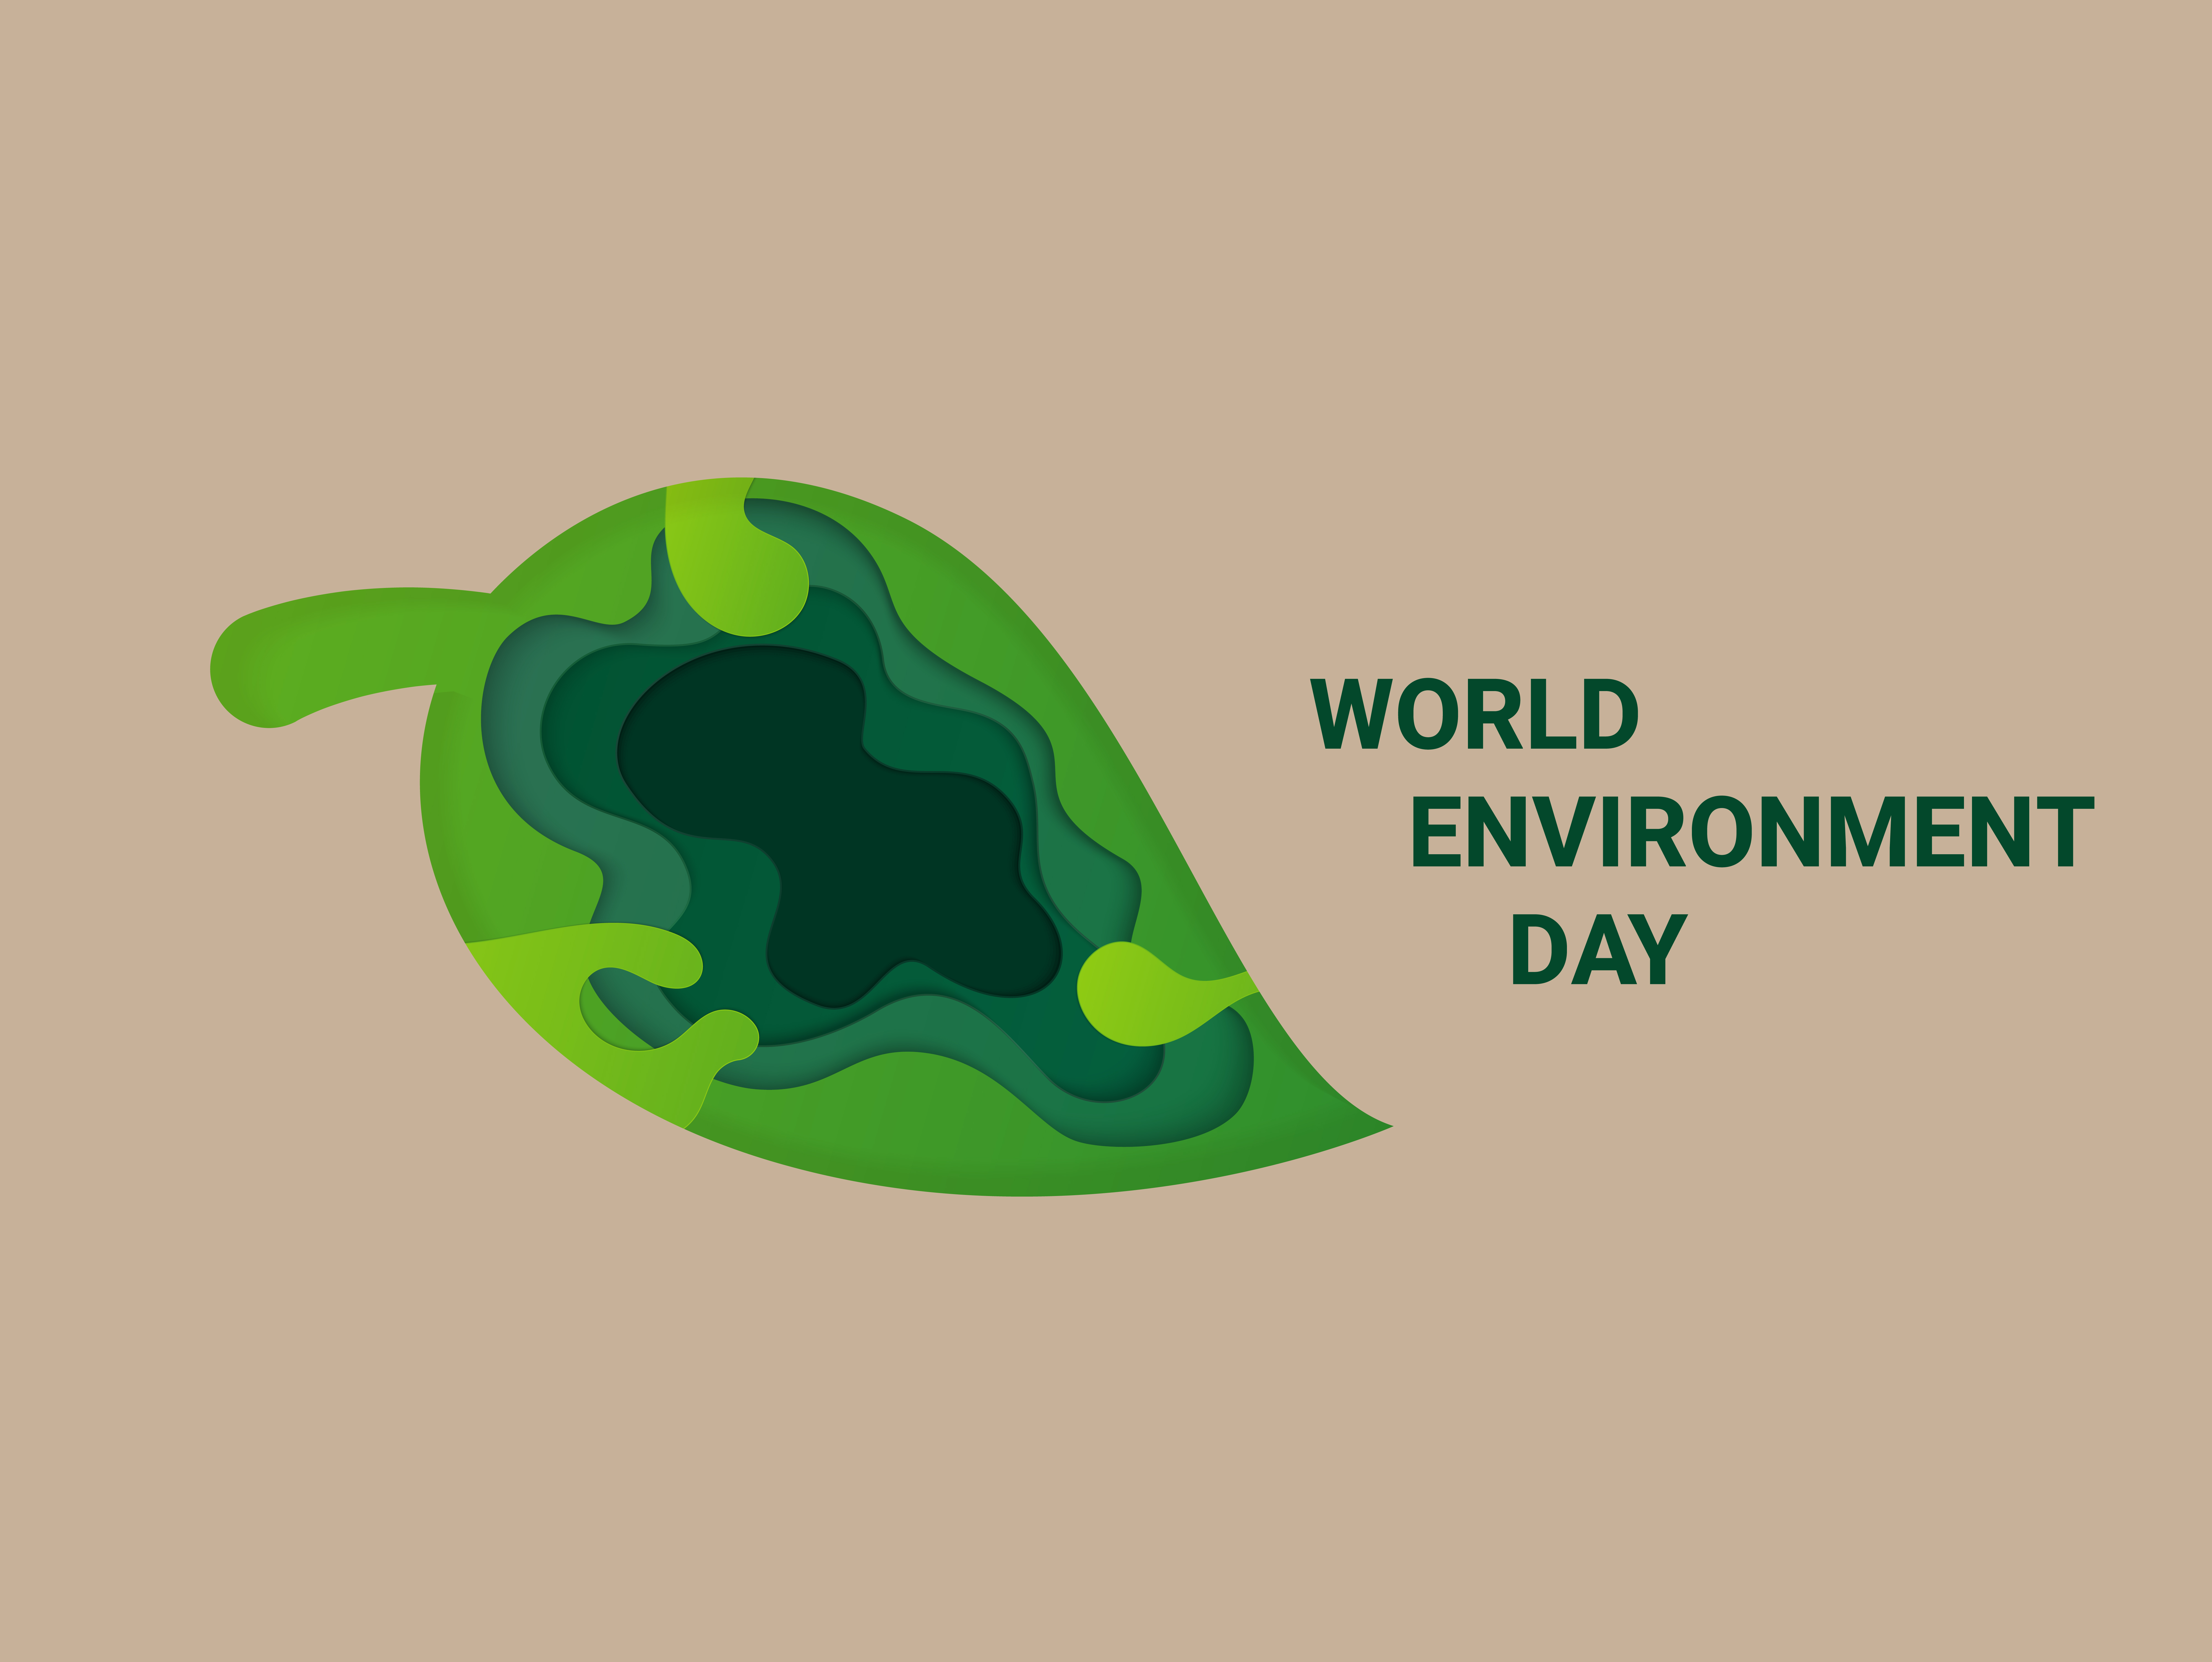 Save Earth Planet World Concept World Environment Day Ecology